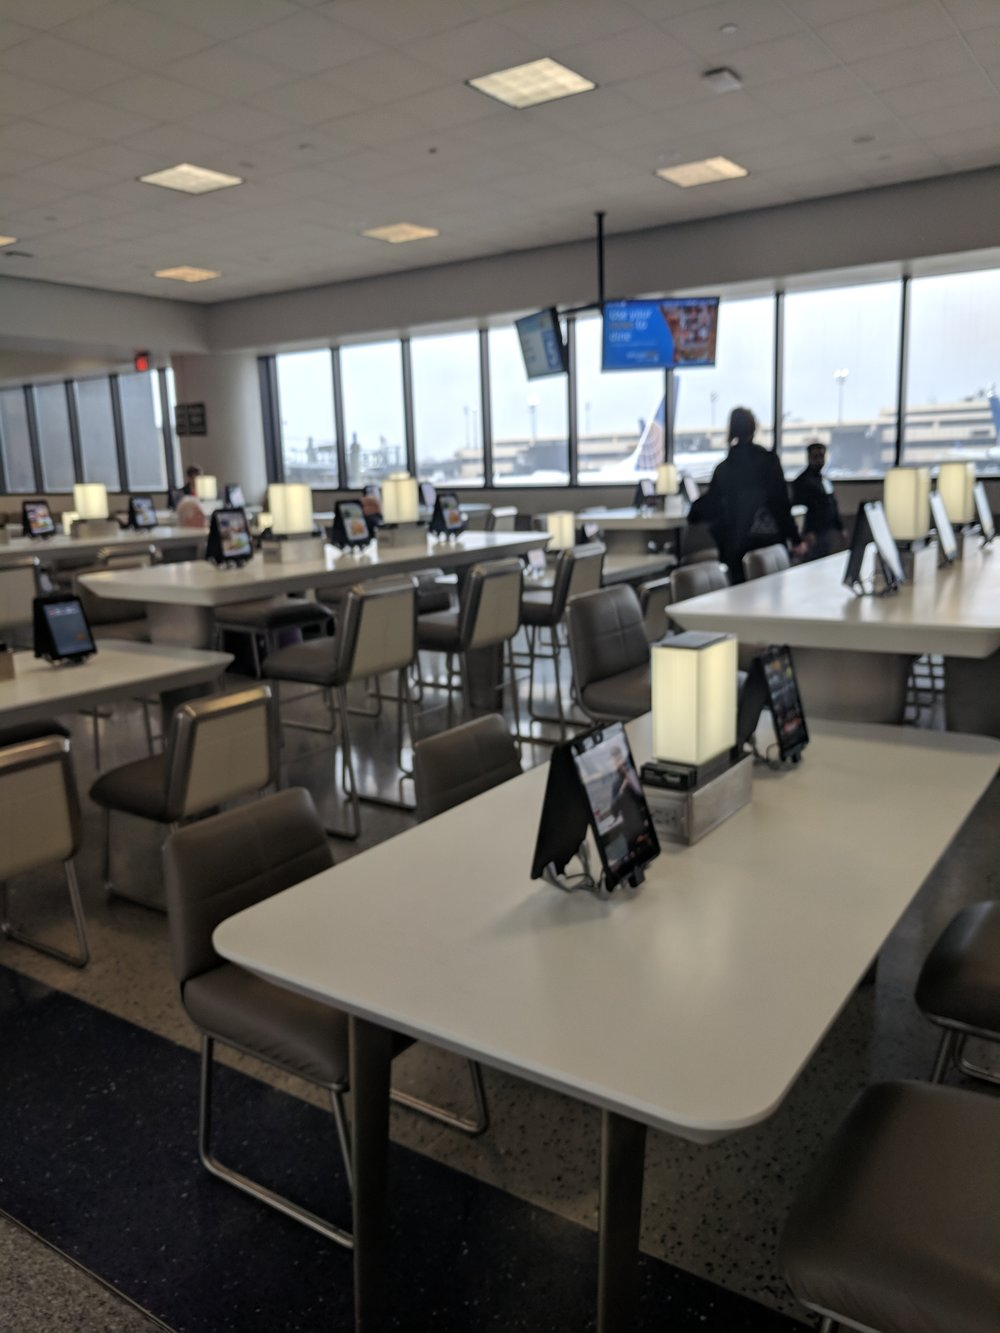 Newark airport had a tablet at every seat, to order food and drinks from!